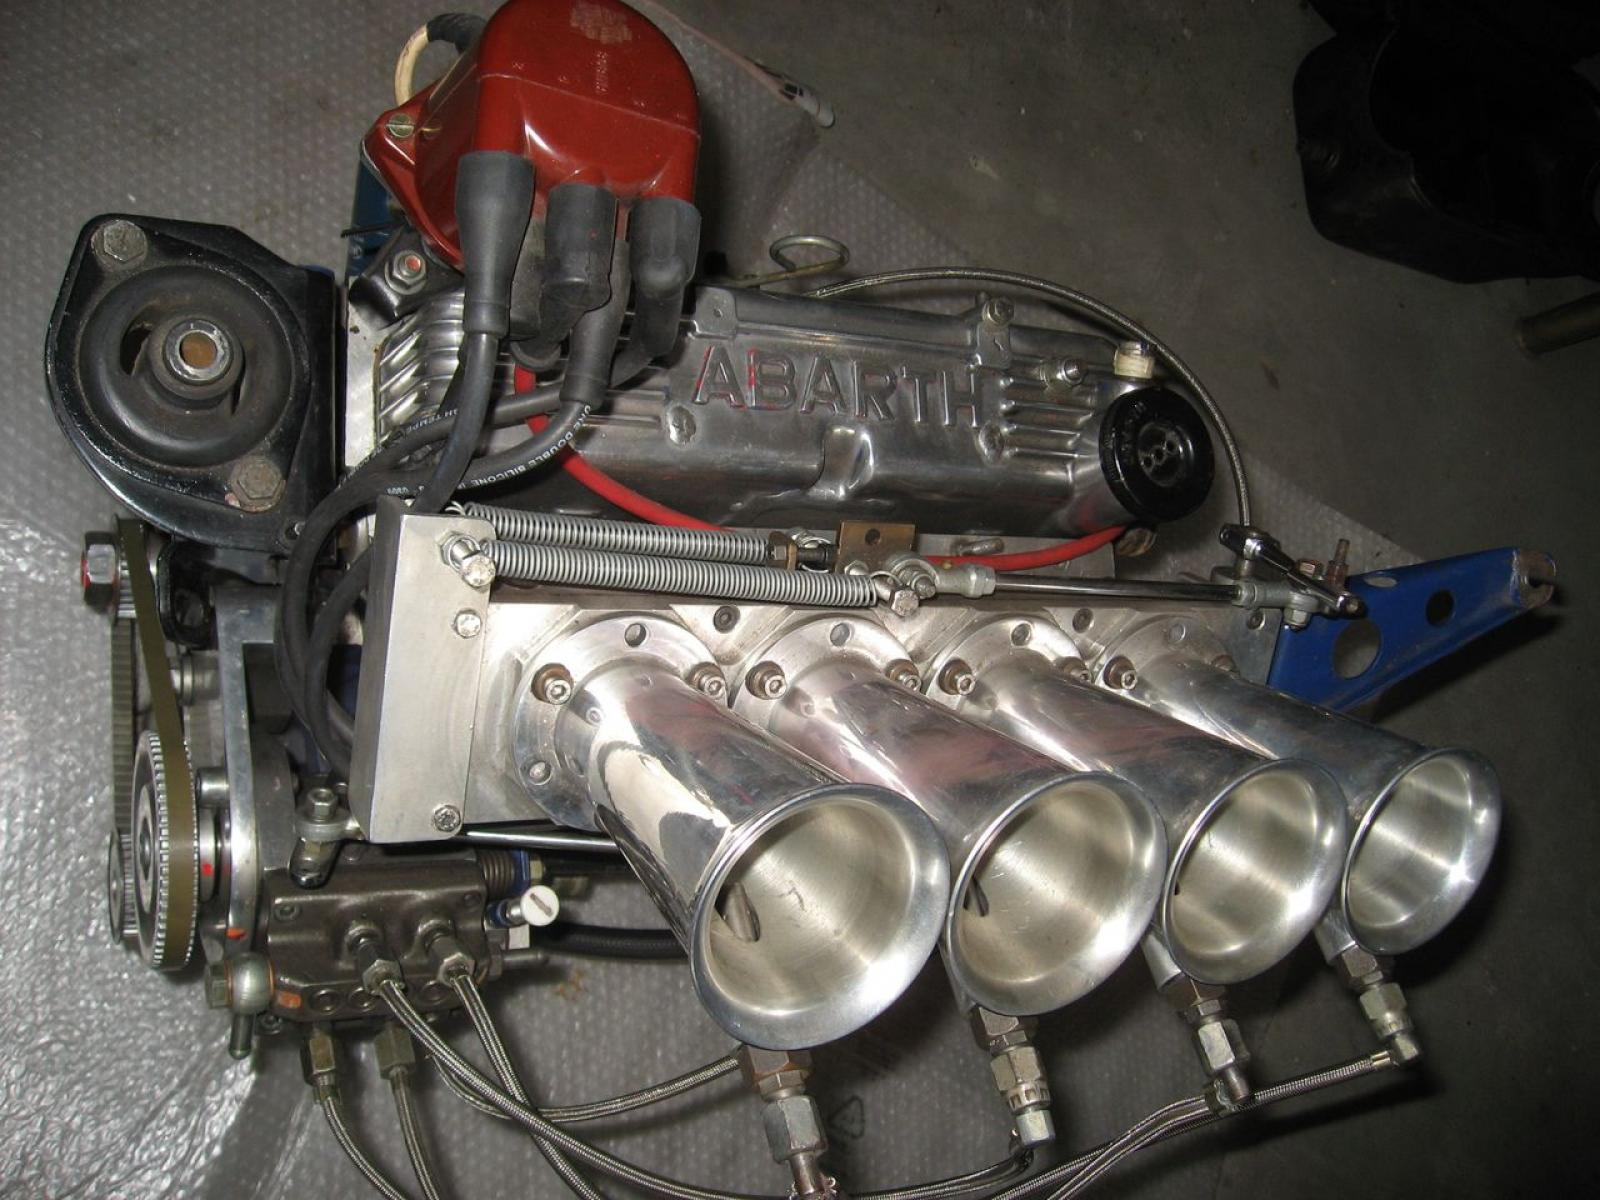 Engine Abarth 112 - 1